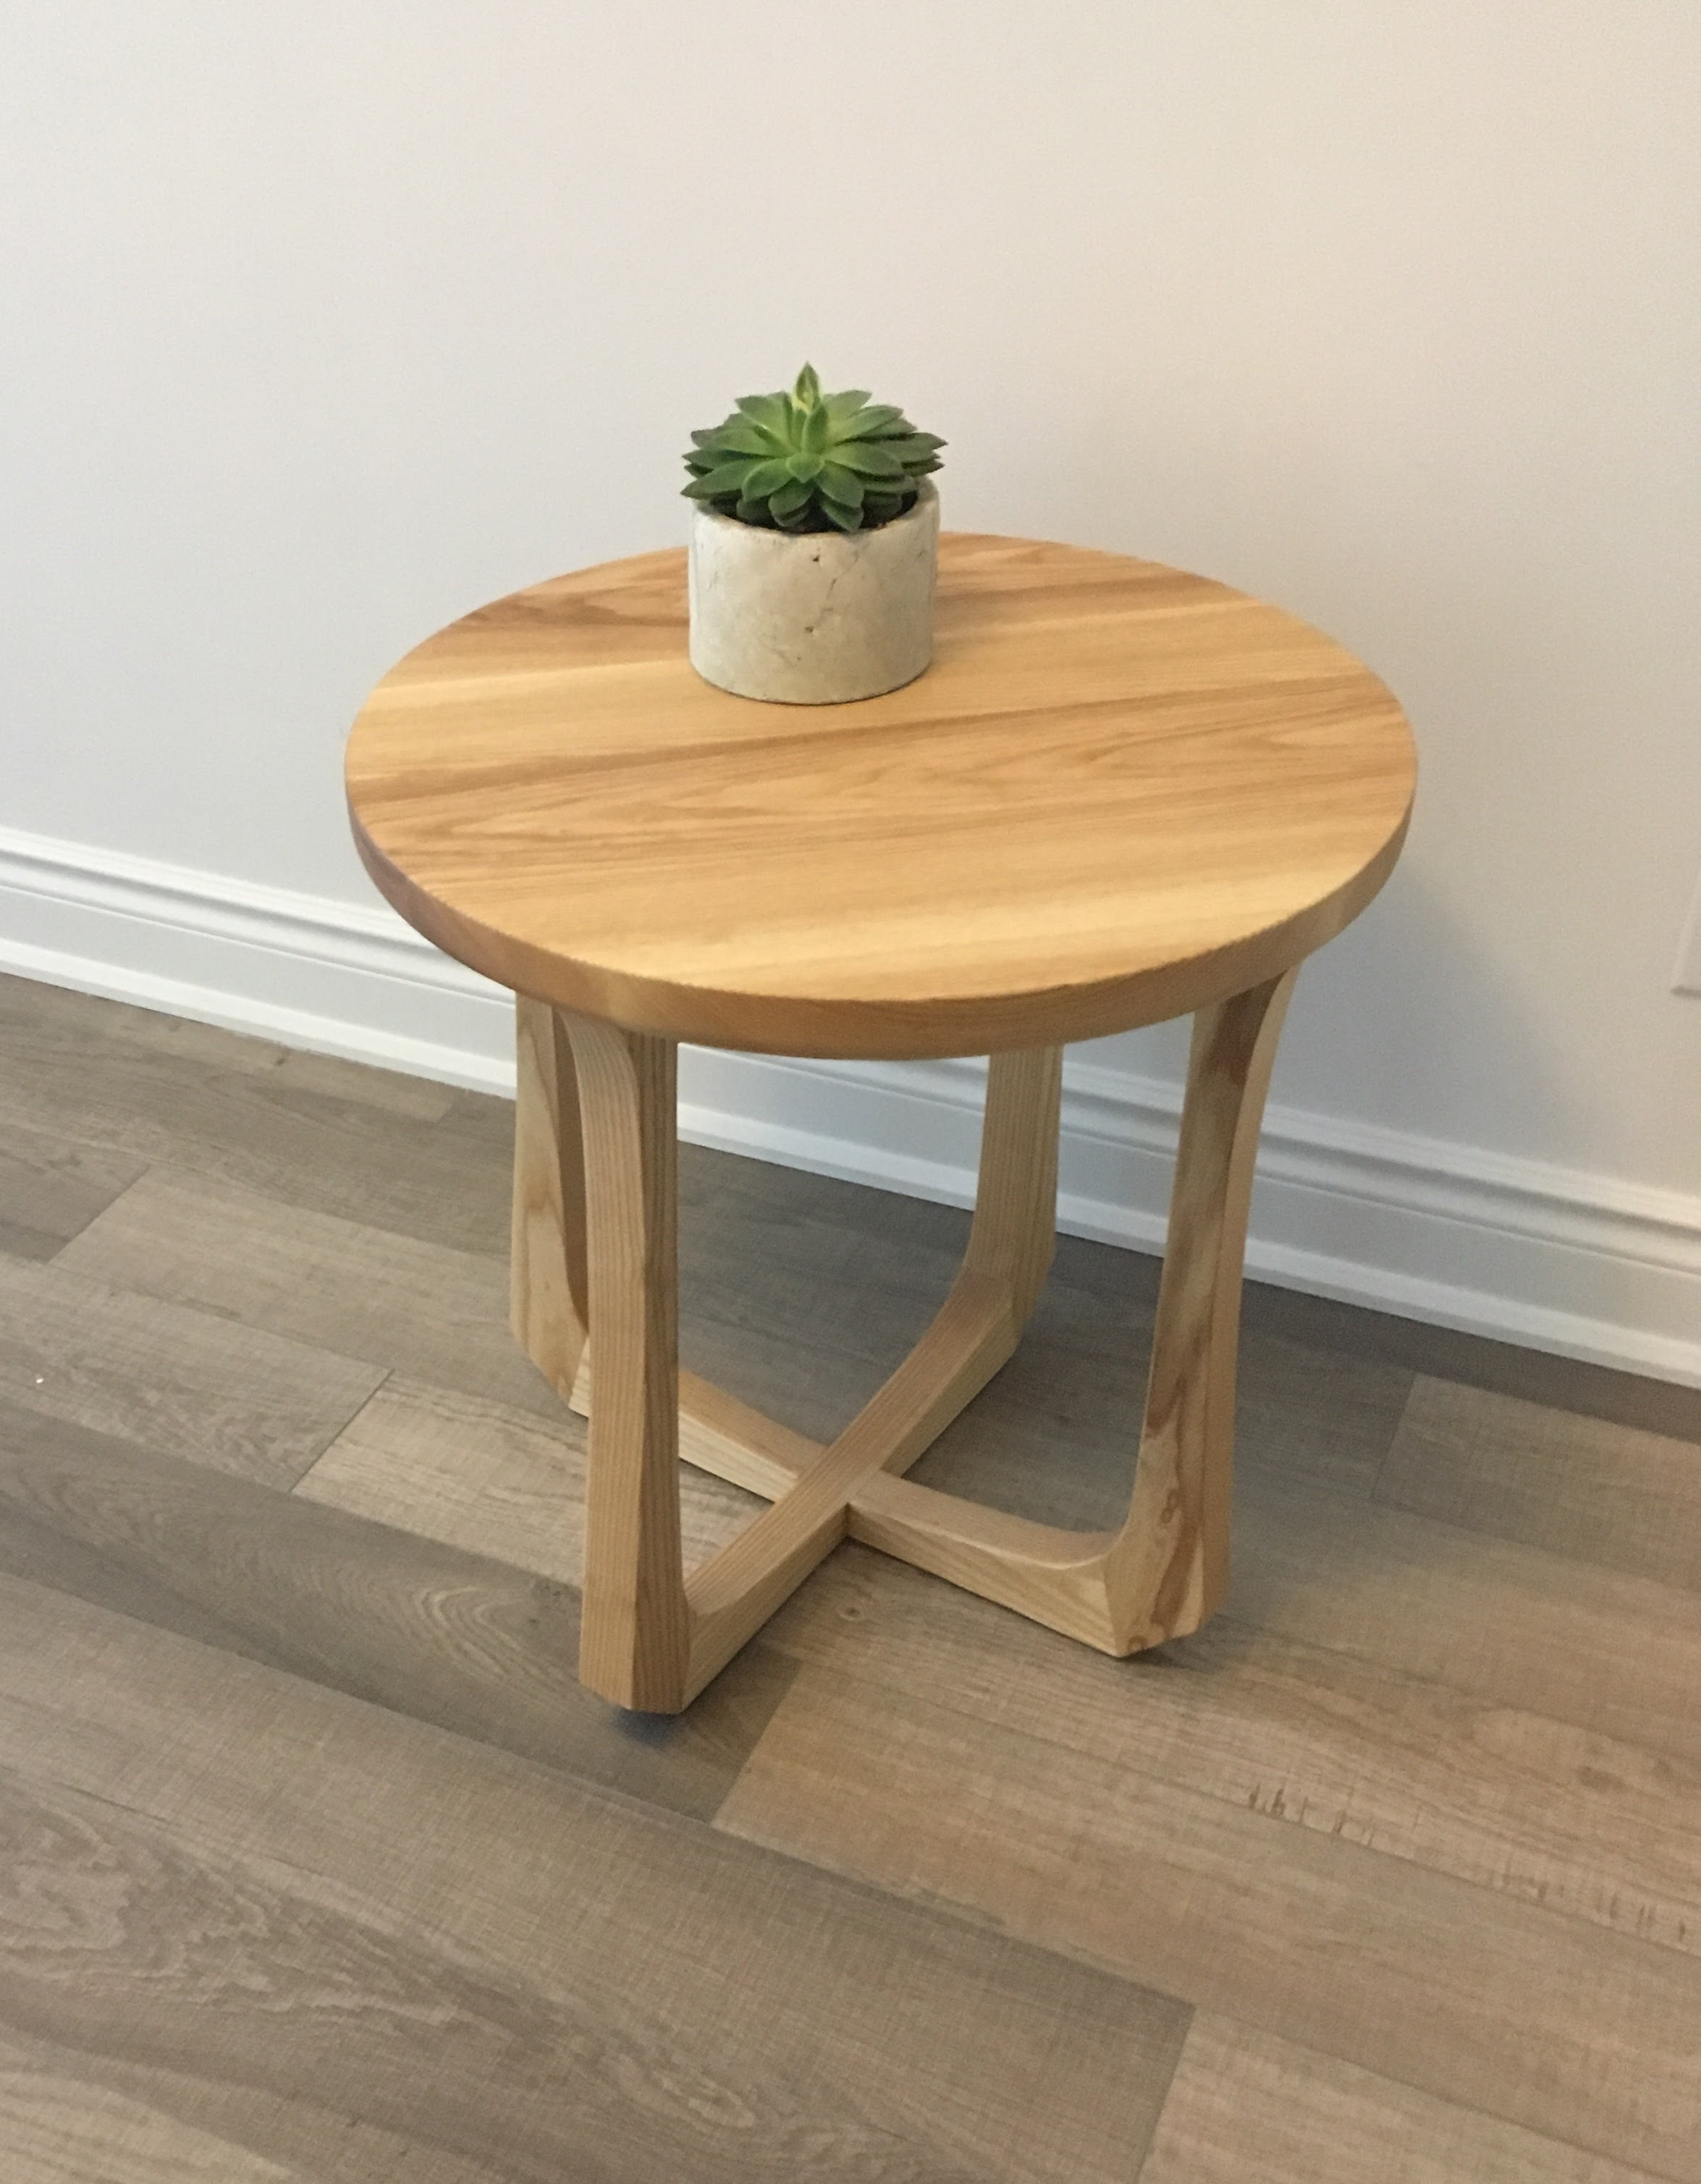 wood_table7.JPG